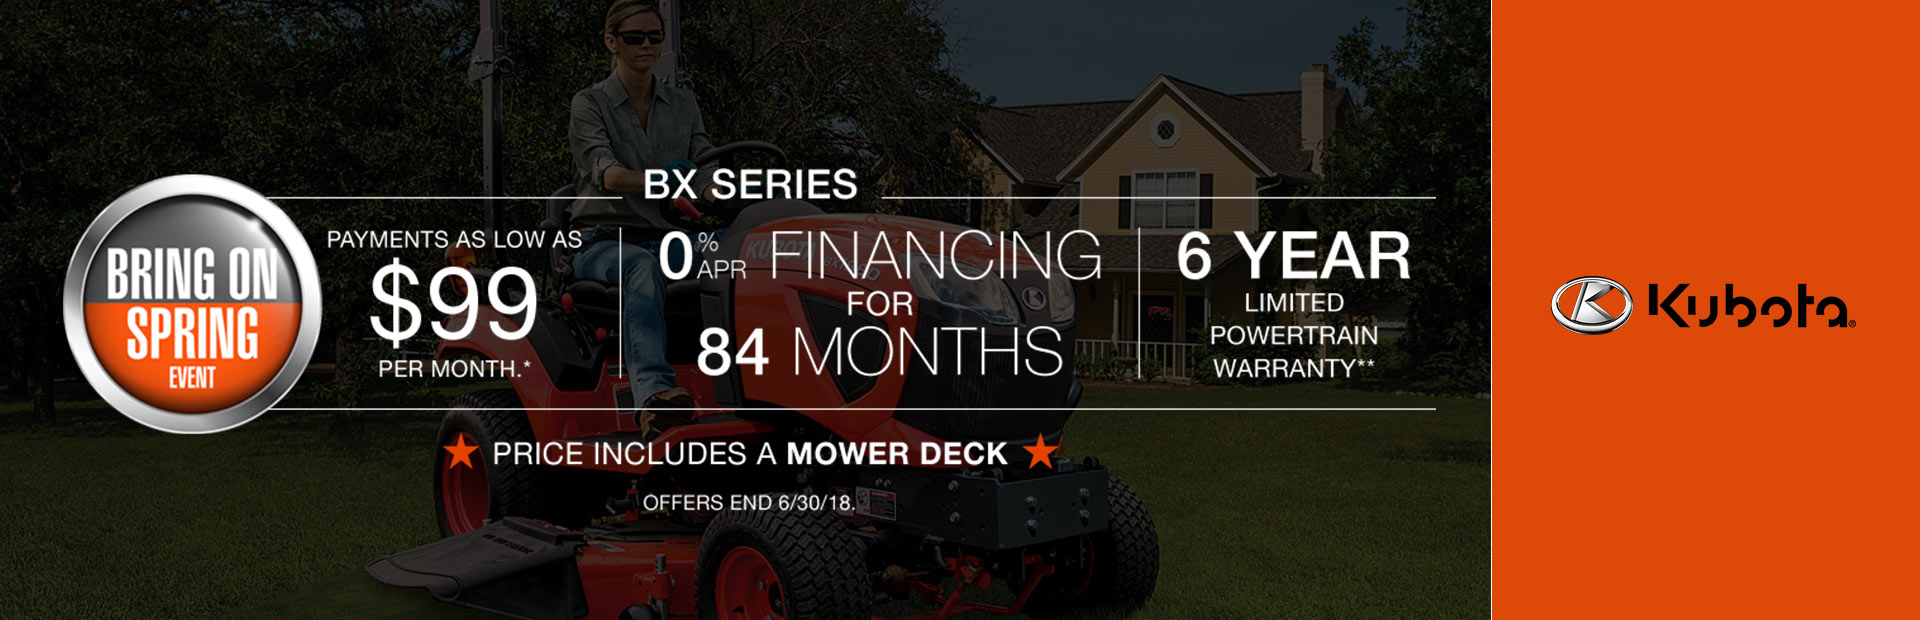 Kubota: New Purchase Special Offer - BX Series